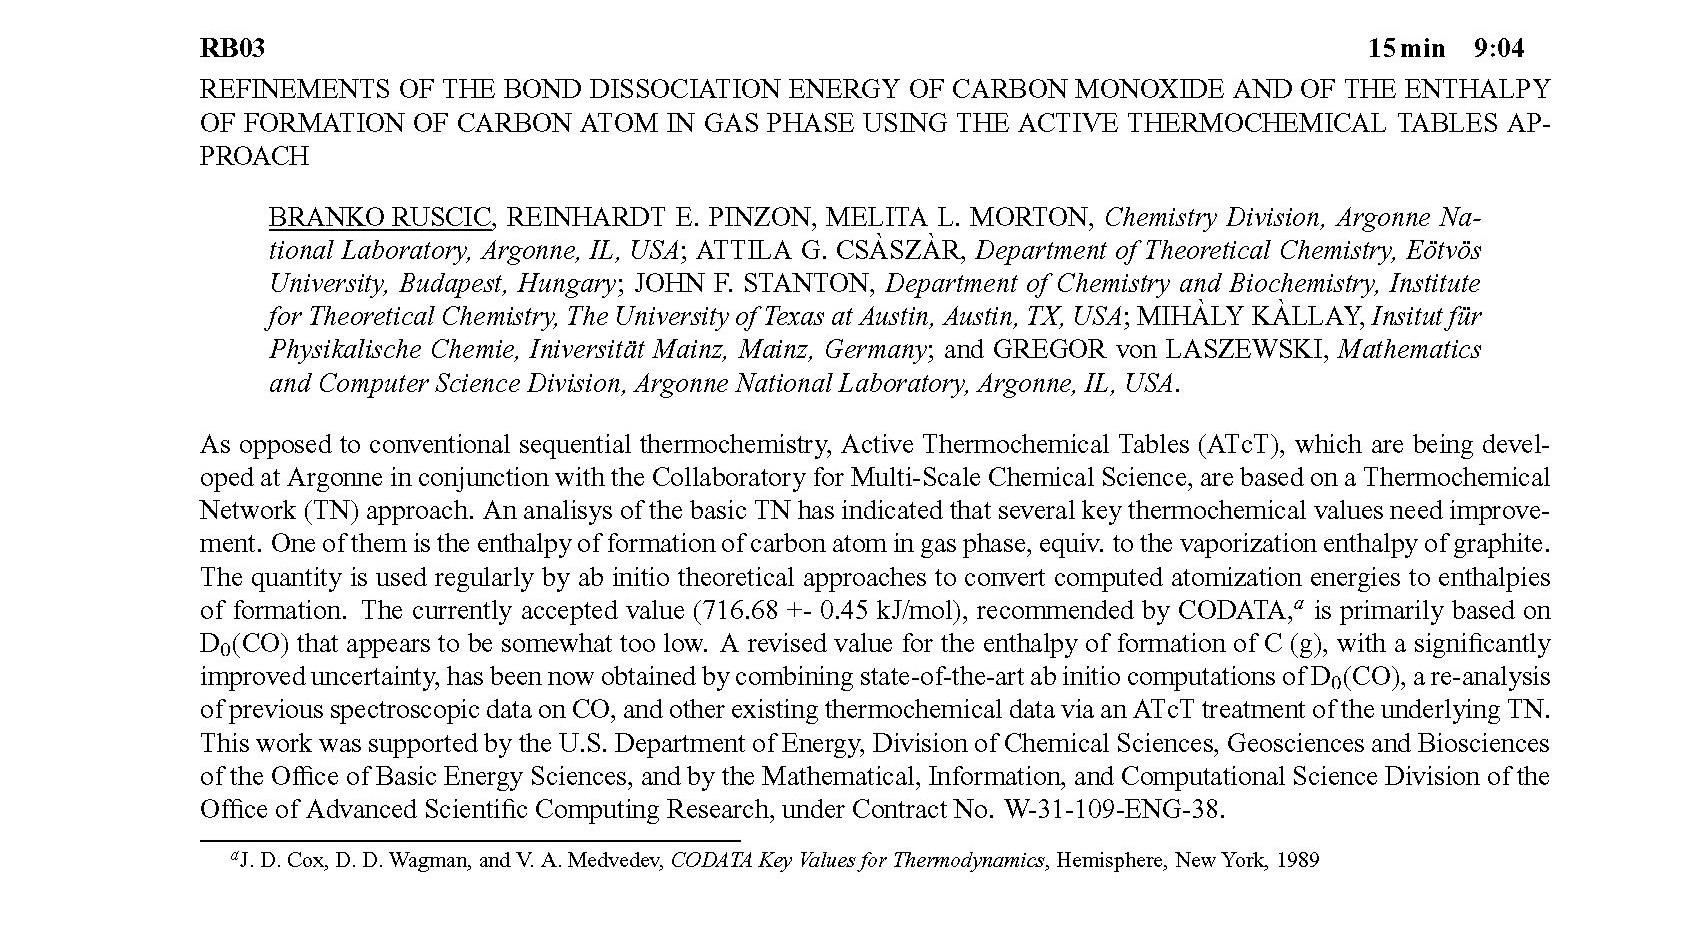 REFINEMENTS OF THE BOND DISSOCIATION ENERGY OF CARBON MONOXIDE AND ...